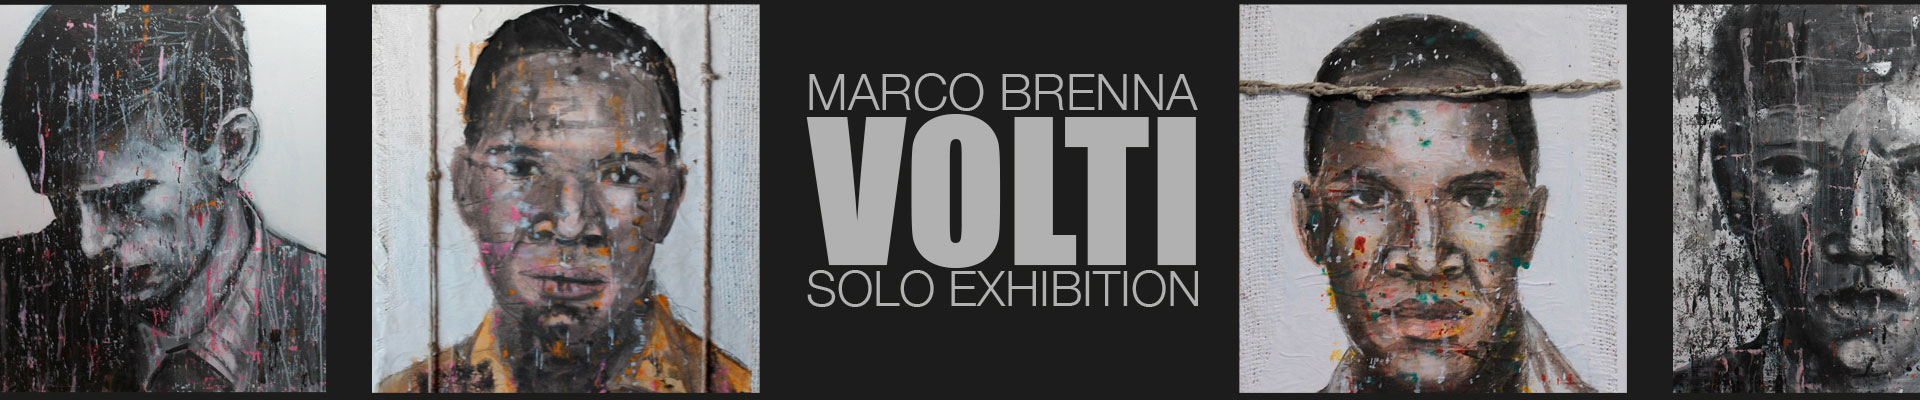 VOLTI-VERNISSAGE-with-the-artist-Marco-Brenna